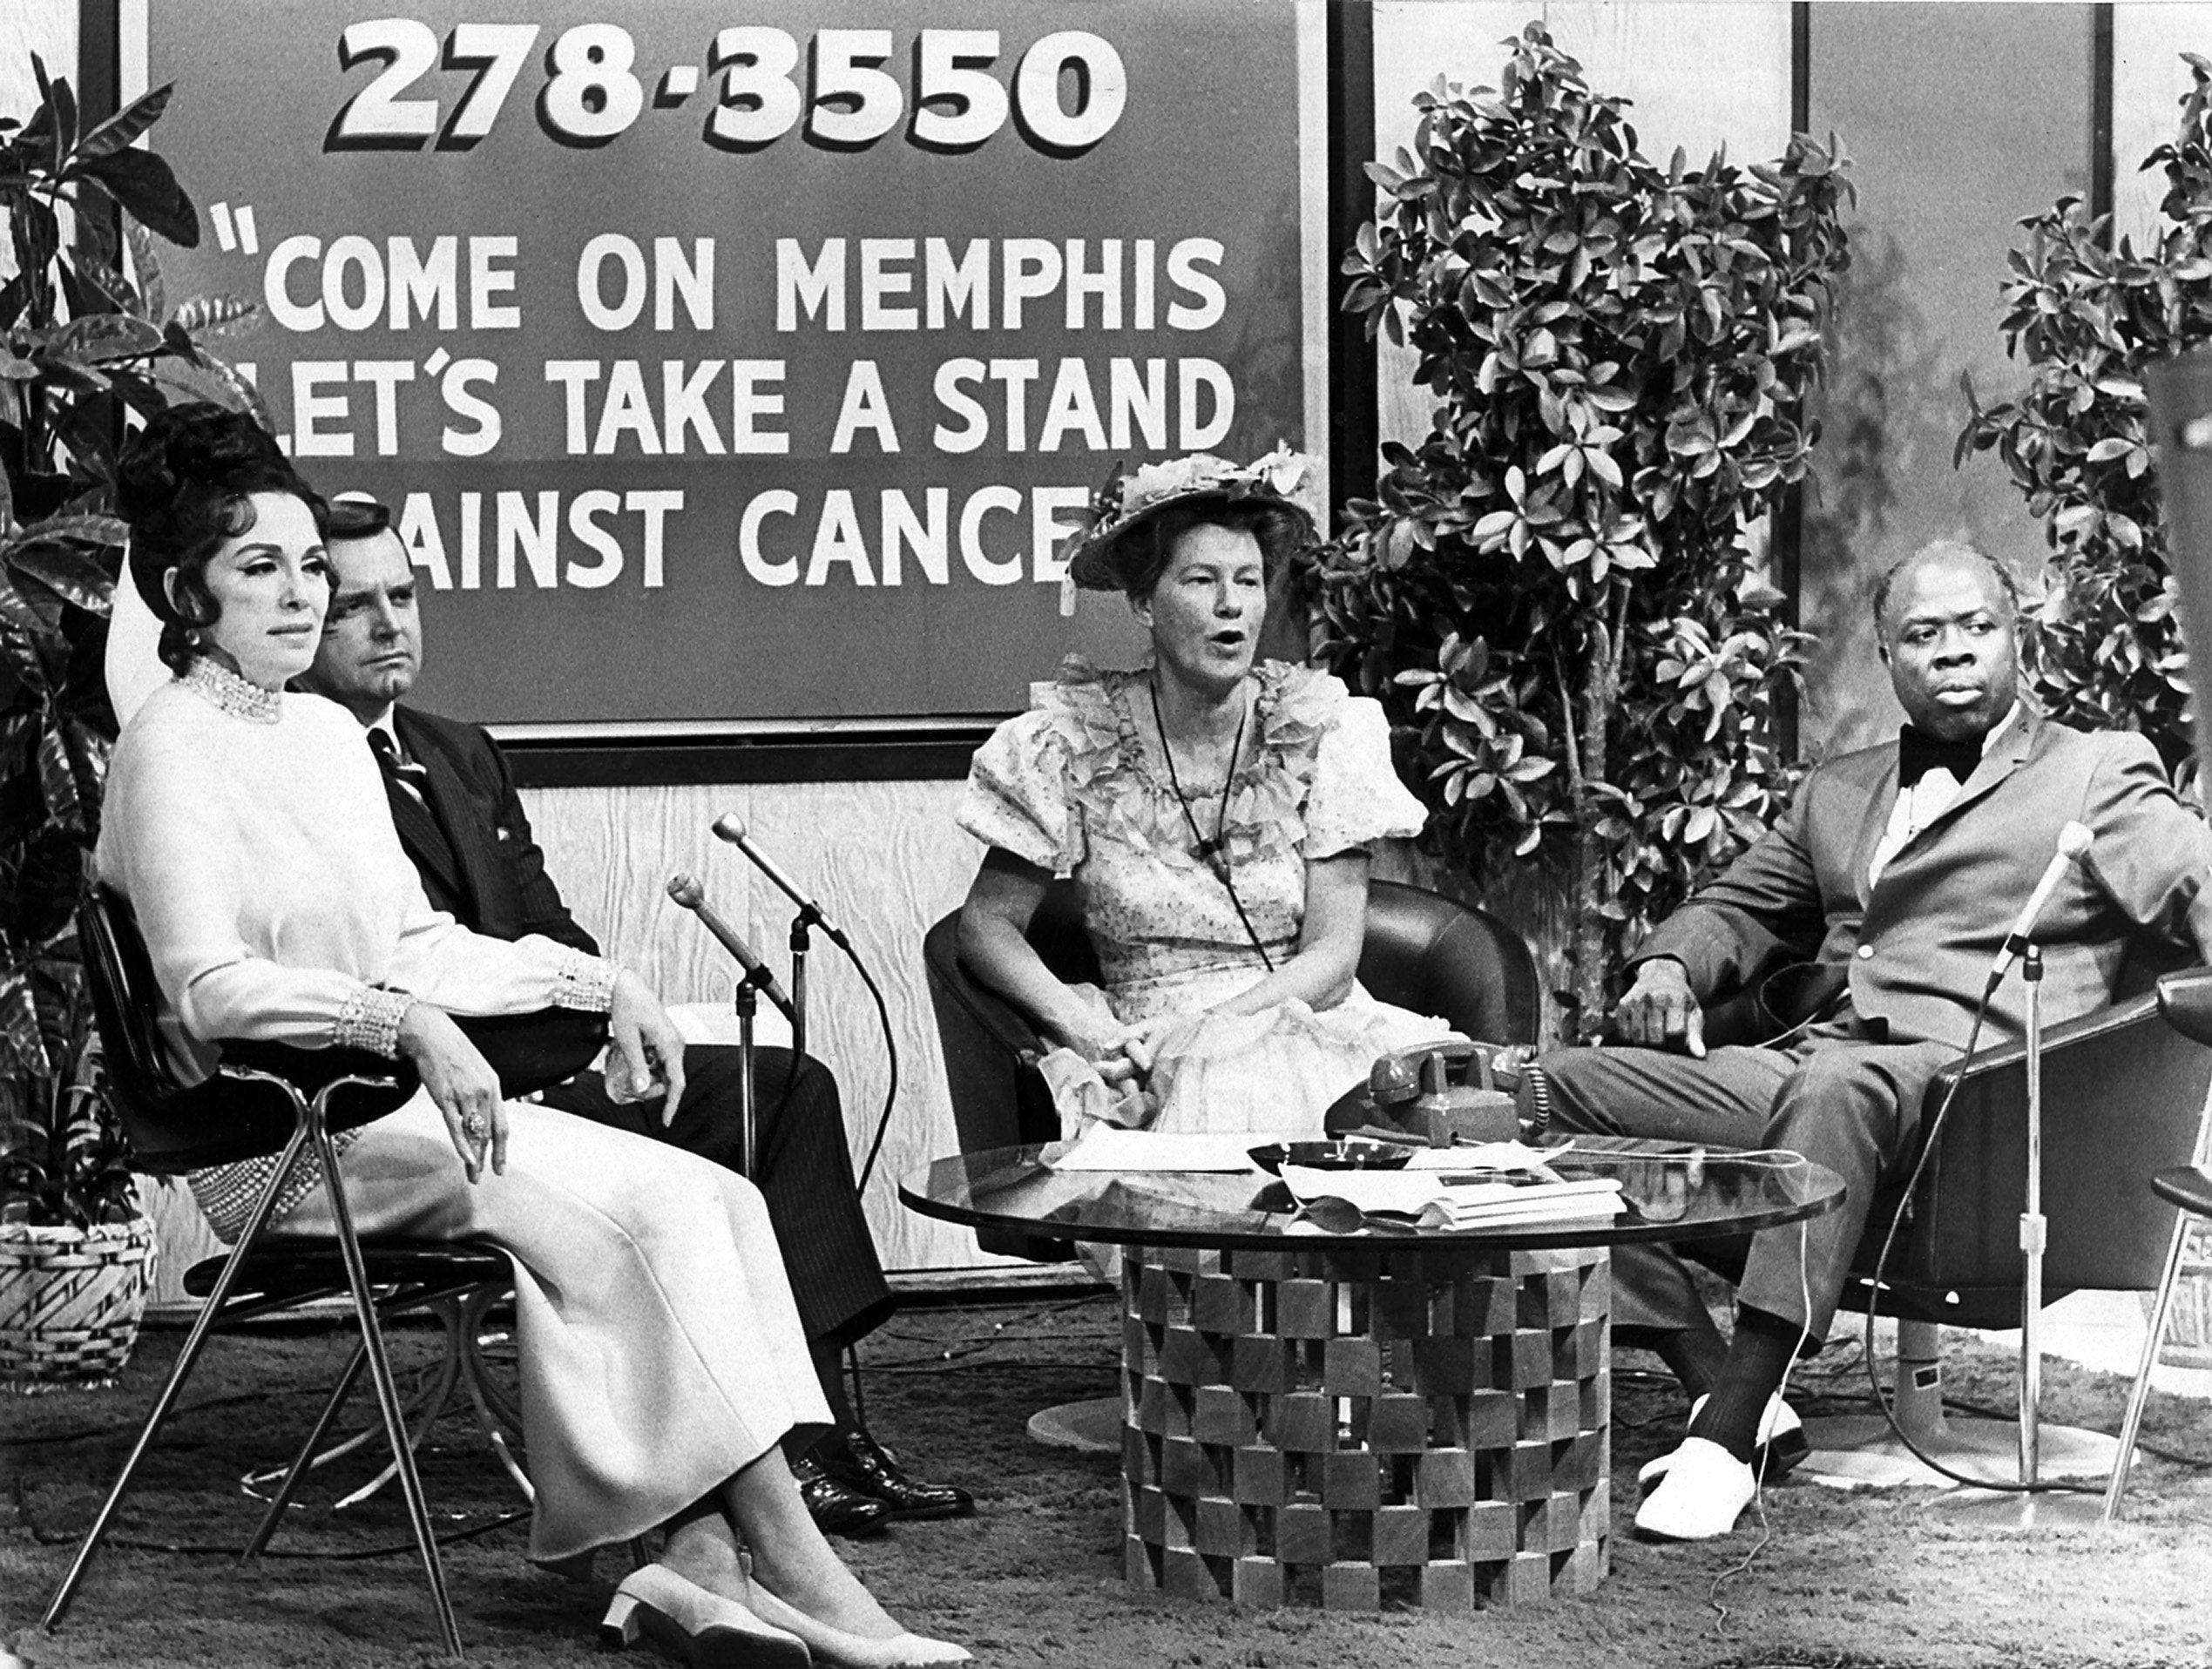 Host celebrities kept the action going between acts and auctions on Aug. 28, 1970, during the 10-hour telethon at WMC-TV to raise $75,000 for the Memphis and Shelby County chapter of the American Cancer Society. Guest hosts included, from left, Marguerite Piazza, 1971 National Cancer Crusade chairman, William B. Tanner, president of Pepper and Tanner Inc., Minnie Pearl and Rufus Thomas.